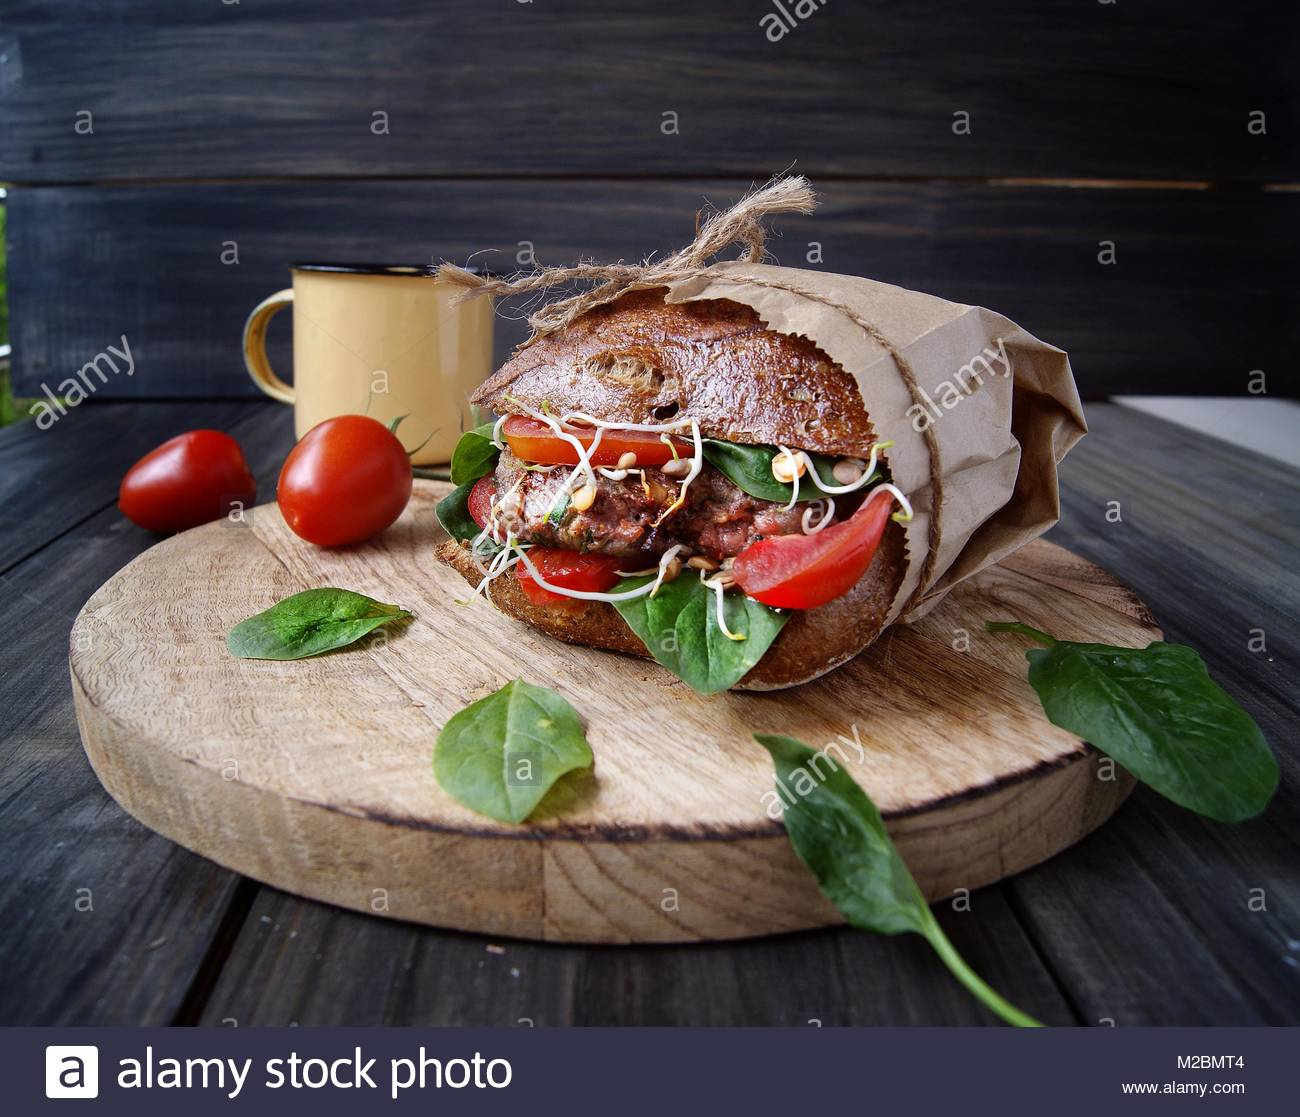 hamburger with black bread and tomatoes on table - Stock Image